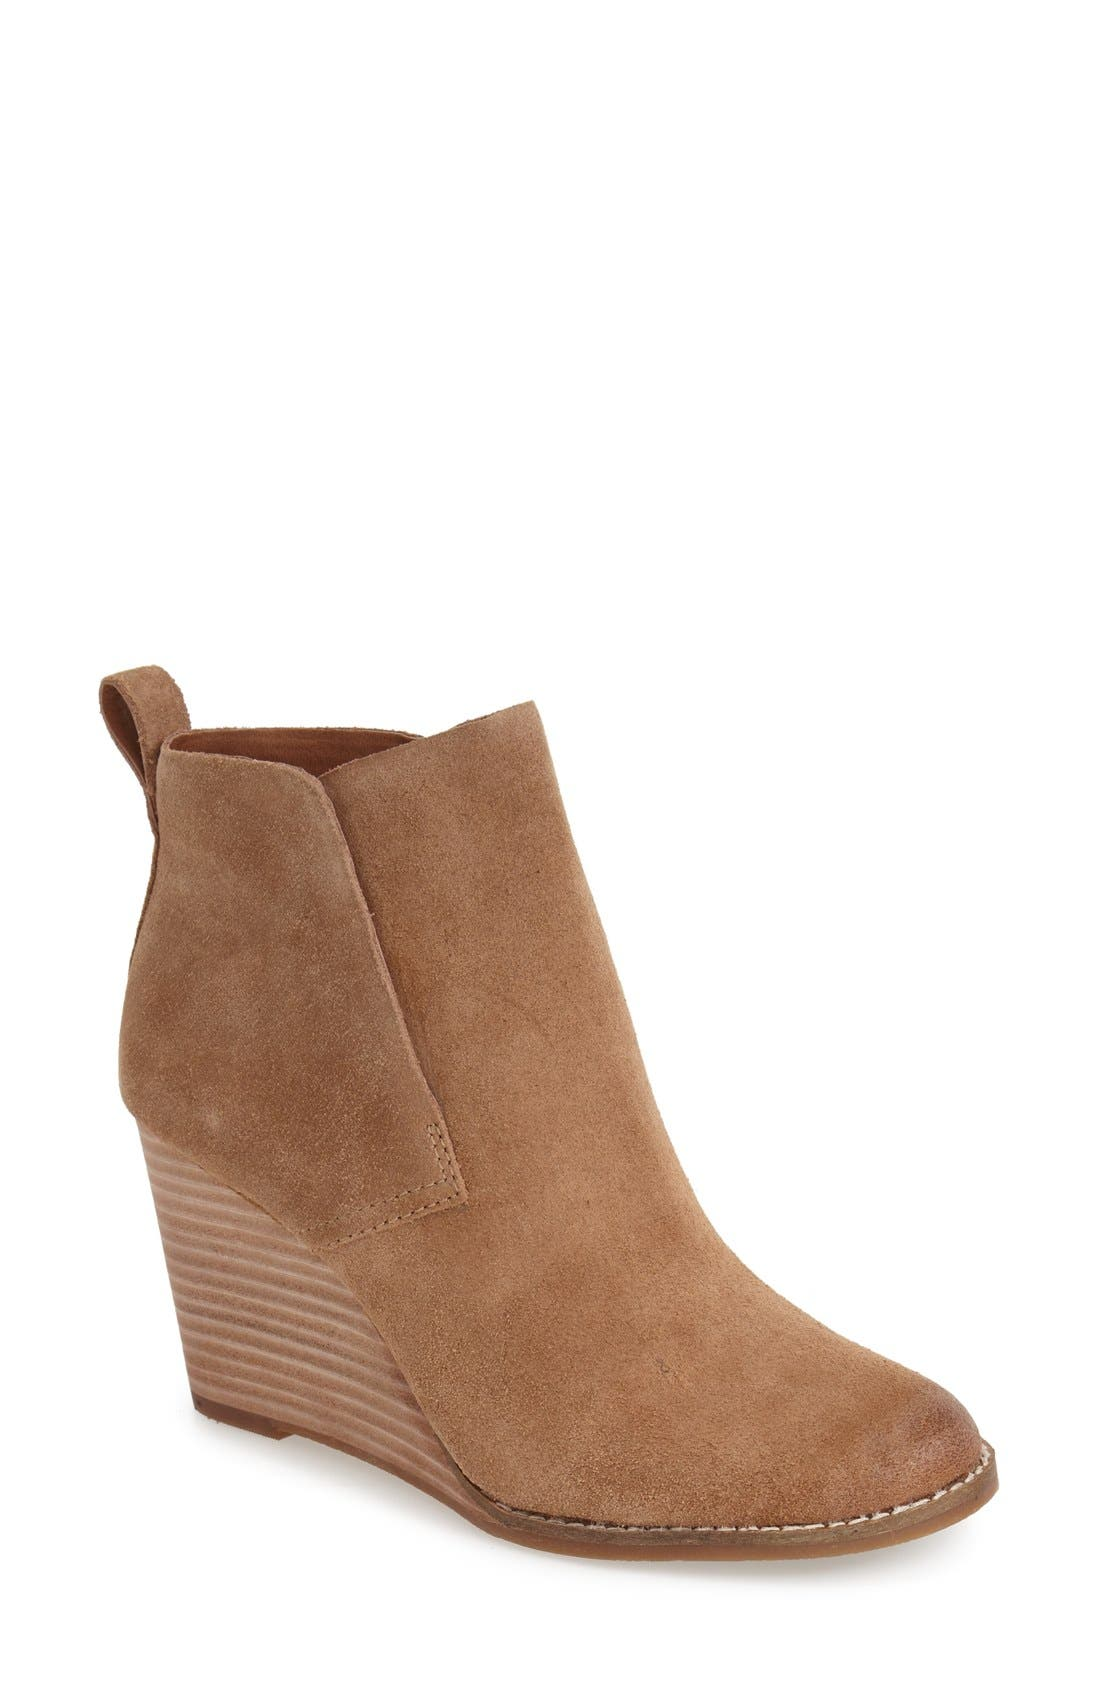 'Yoniana' Wedge Bootie,                             Main thumbnail 3, color,